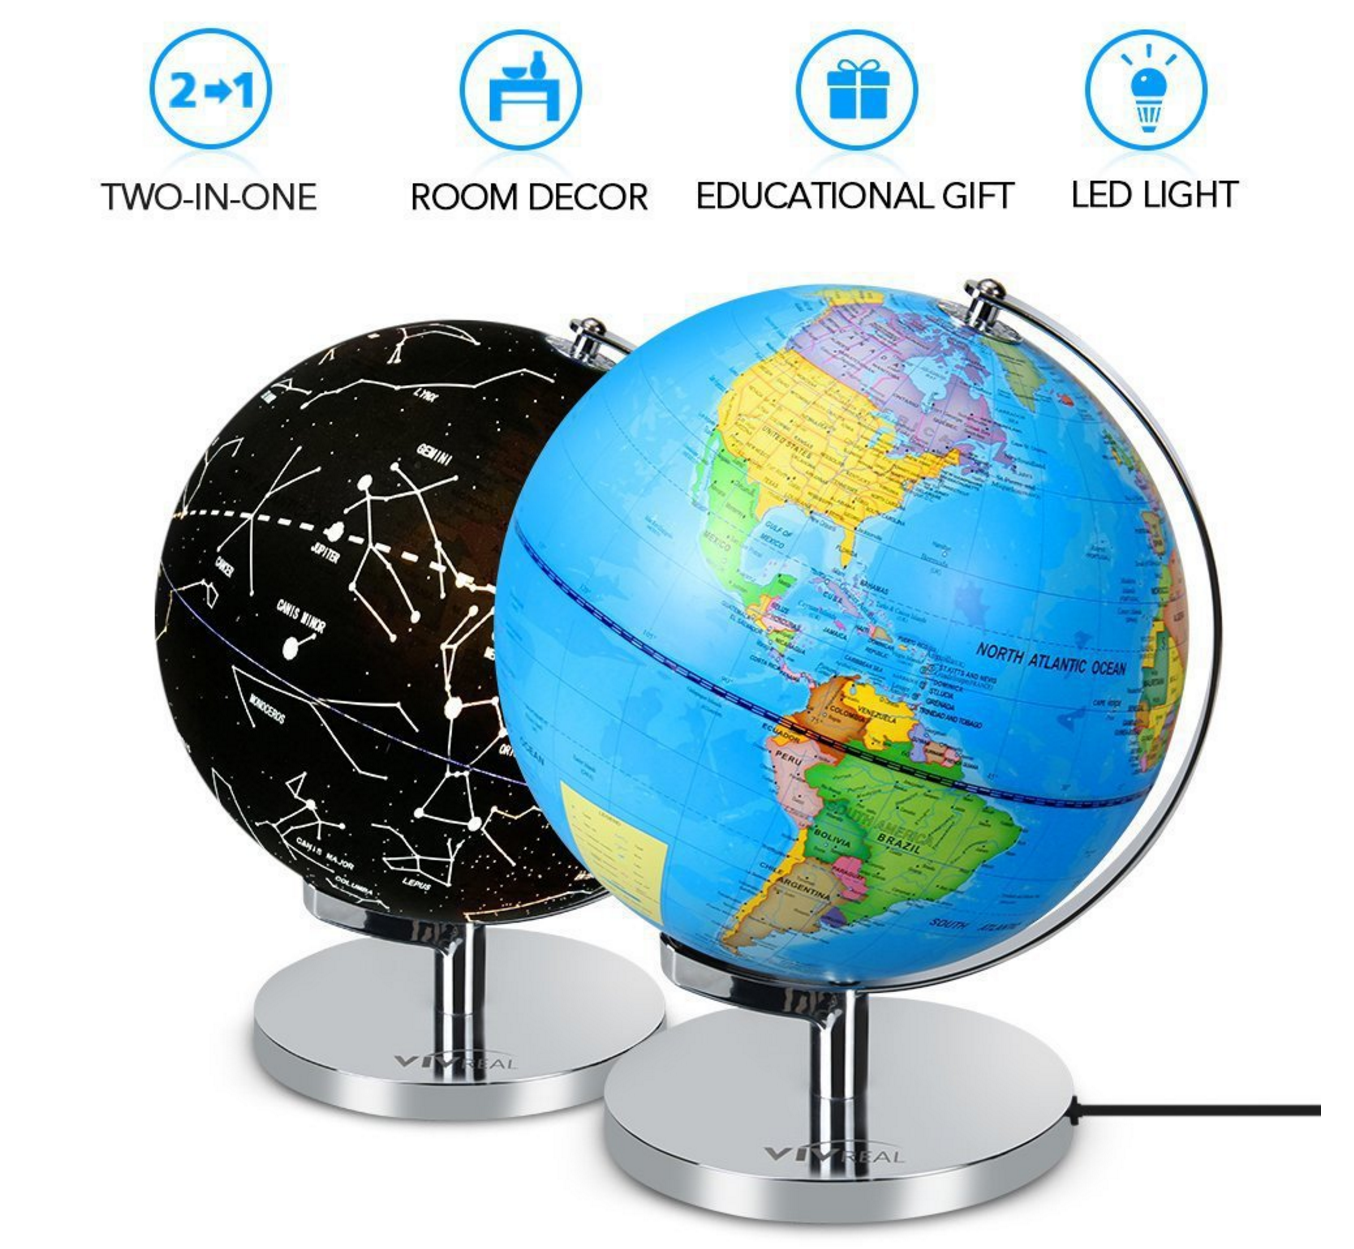 nteractive Globe for Kids, 2 in 1, Day View World Globe and Night View Illuminated Constellation Map